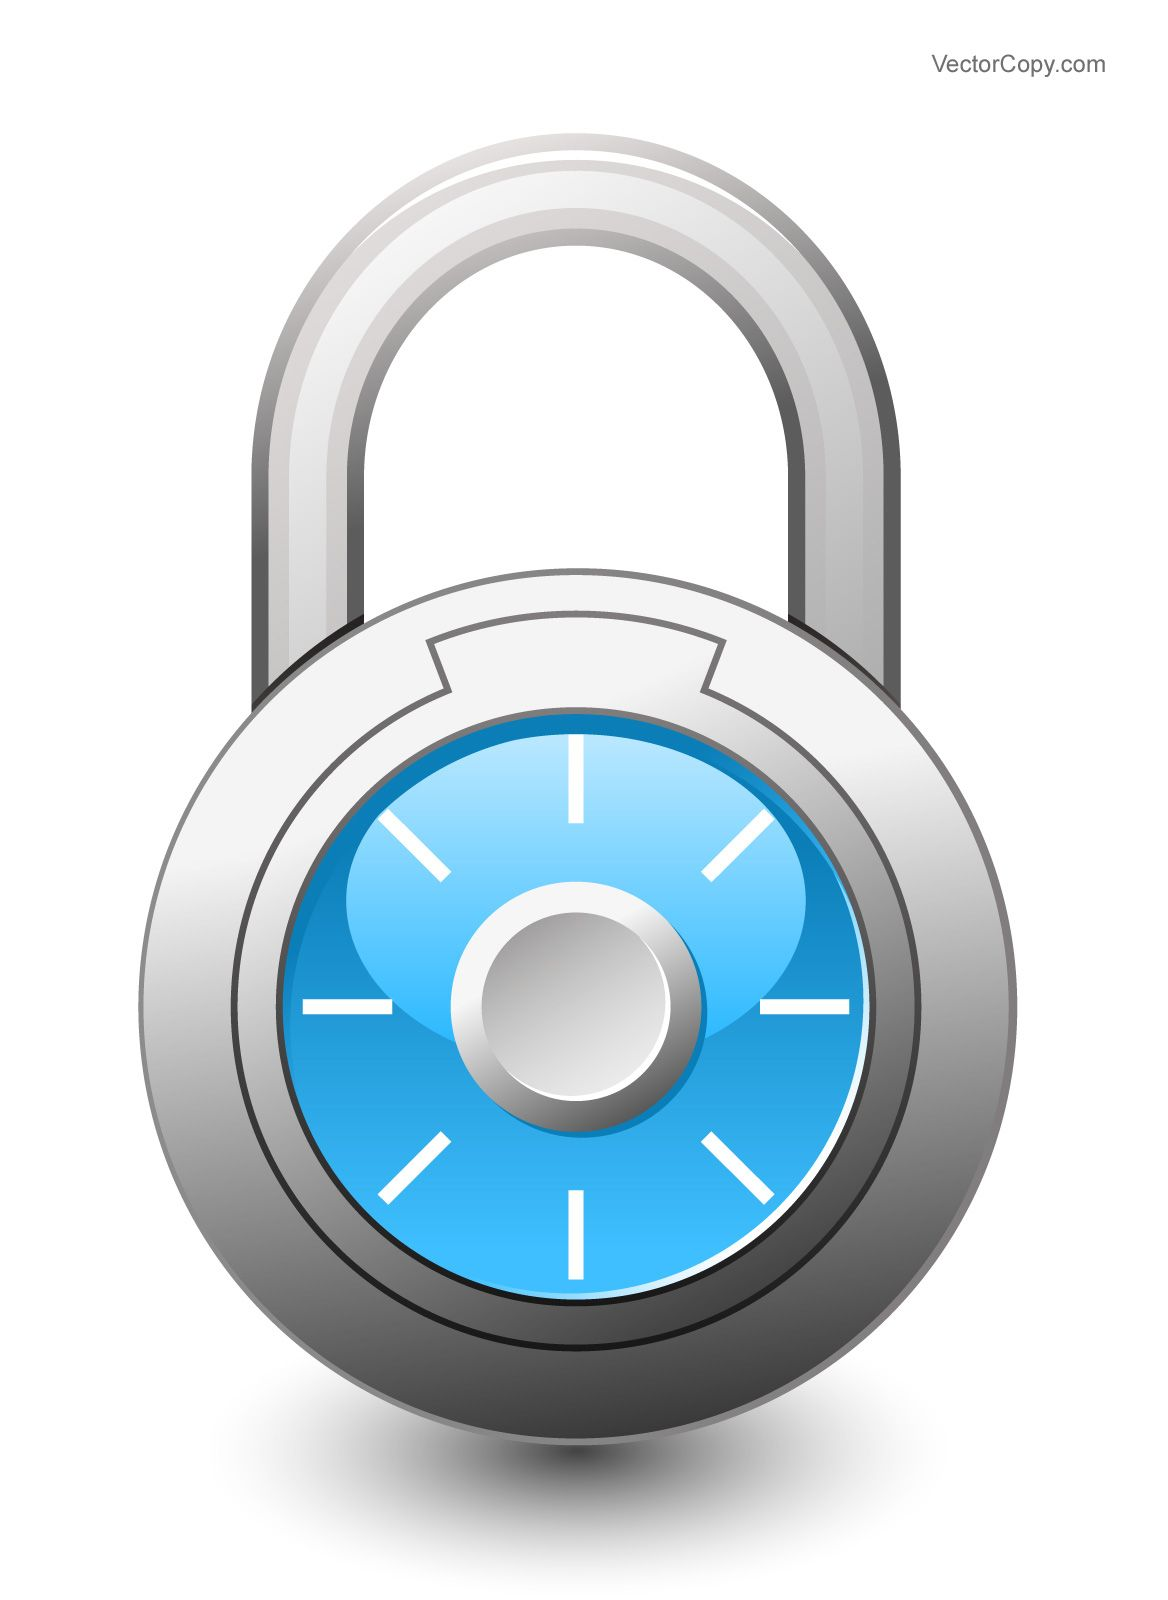 Combination icon free vector. Lock clipart number lock